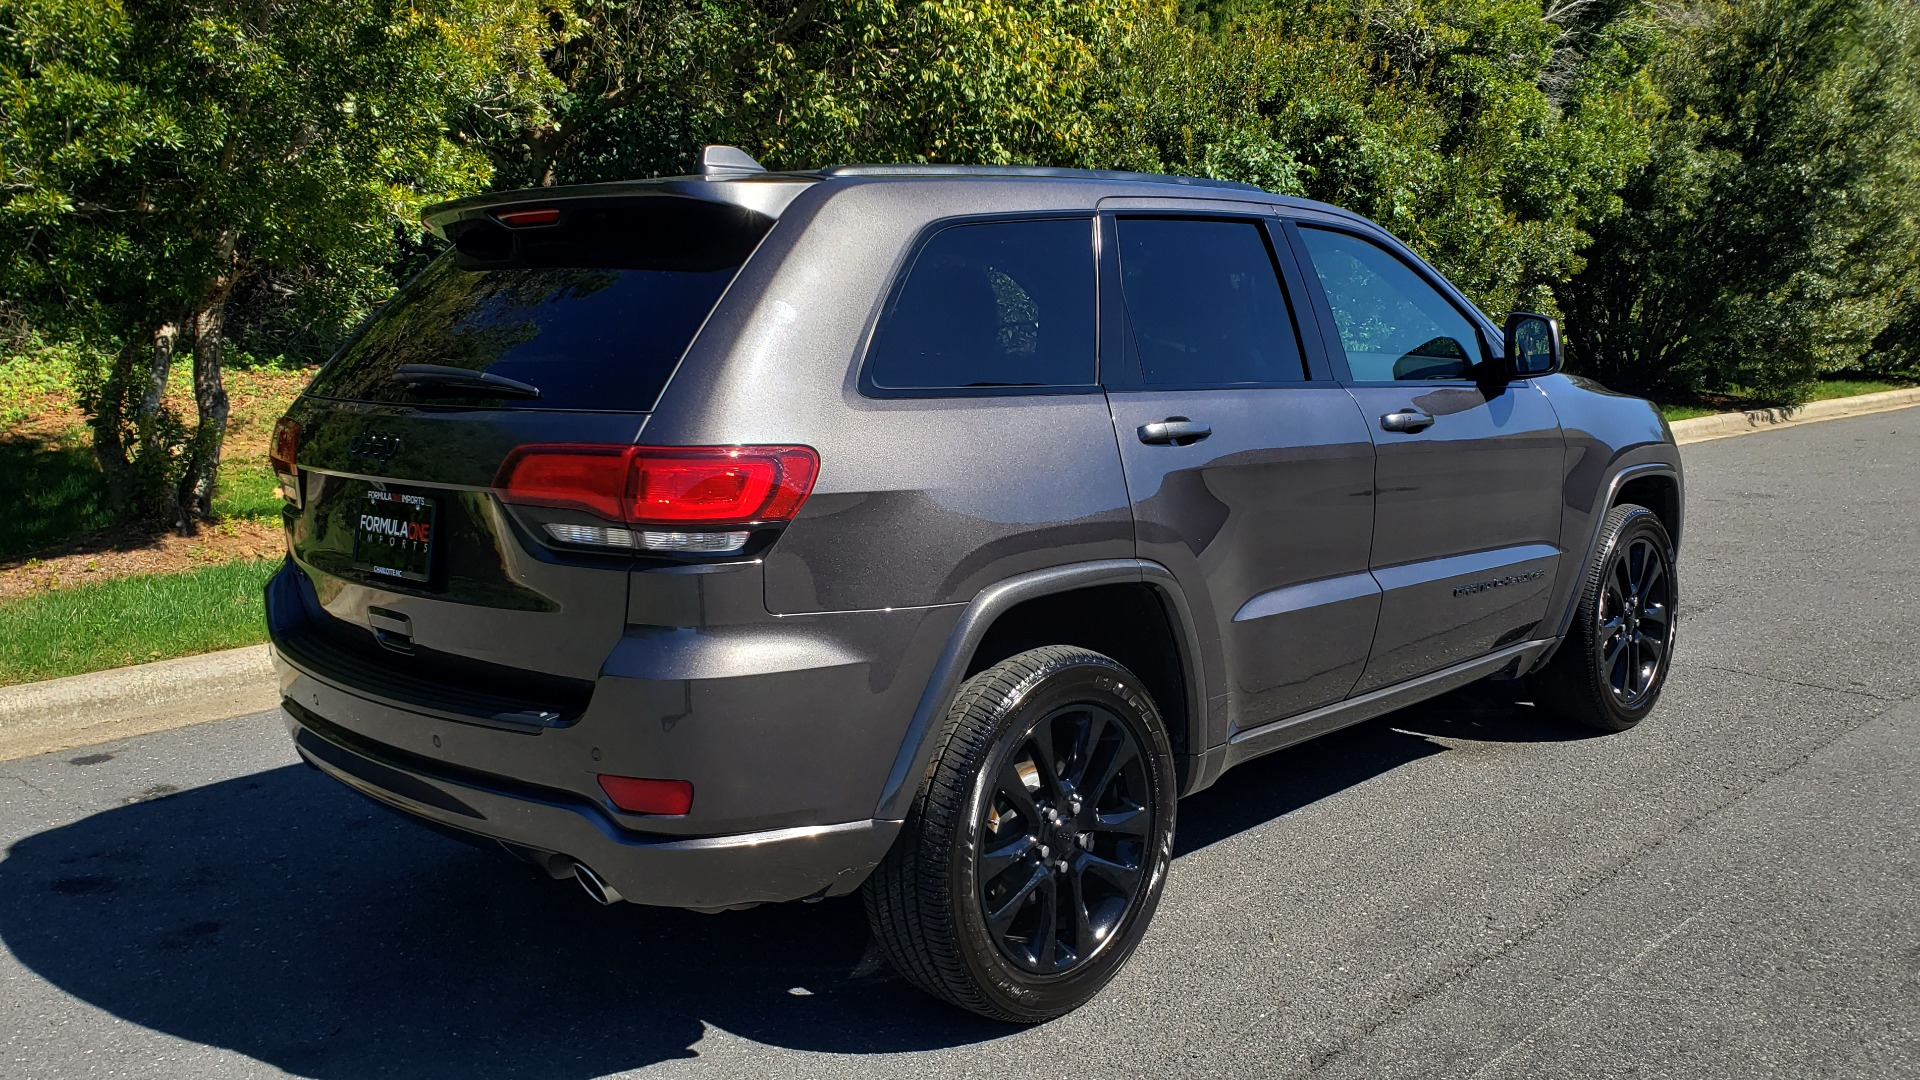 Used 2019 Jeep GRAND CHEROKEE ALTITUDE 4X4 / NAV / WIFI / SUNROOF / REARVIEW for sale $34,995 at Formula Imports in Charlotte NC 28227 6